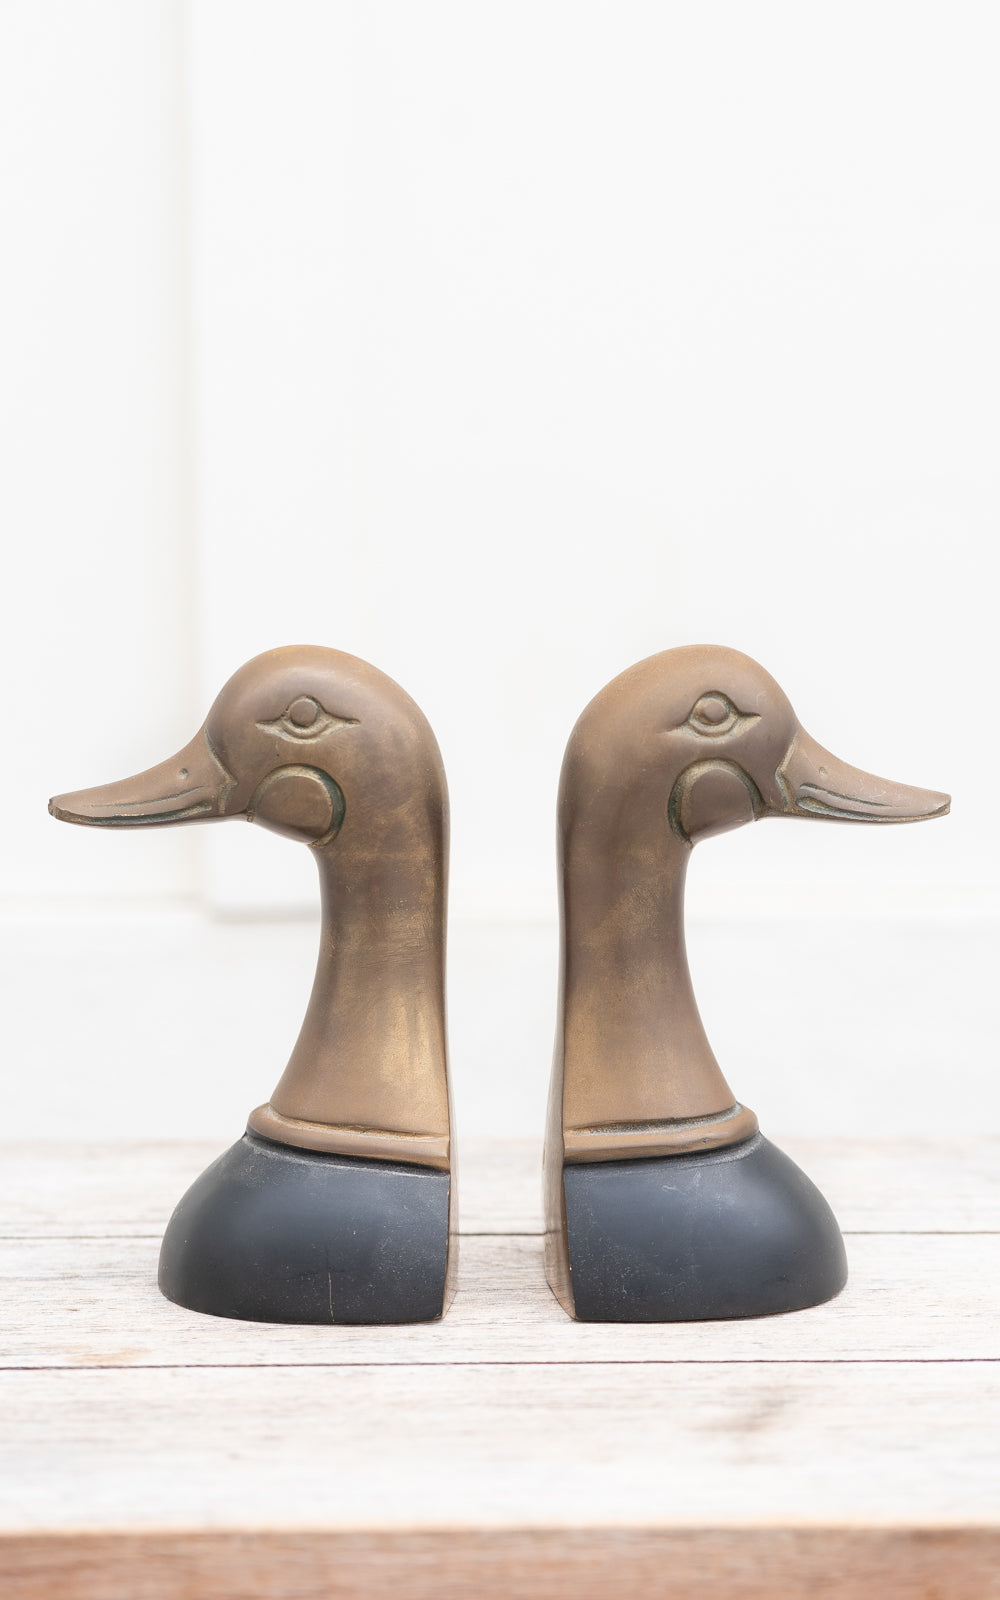 Mallard Bookends in brass